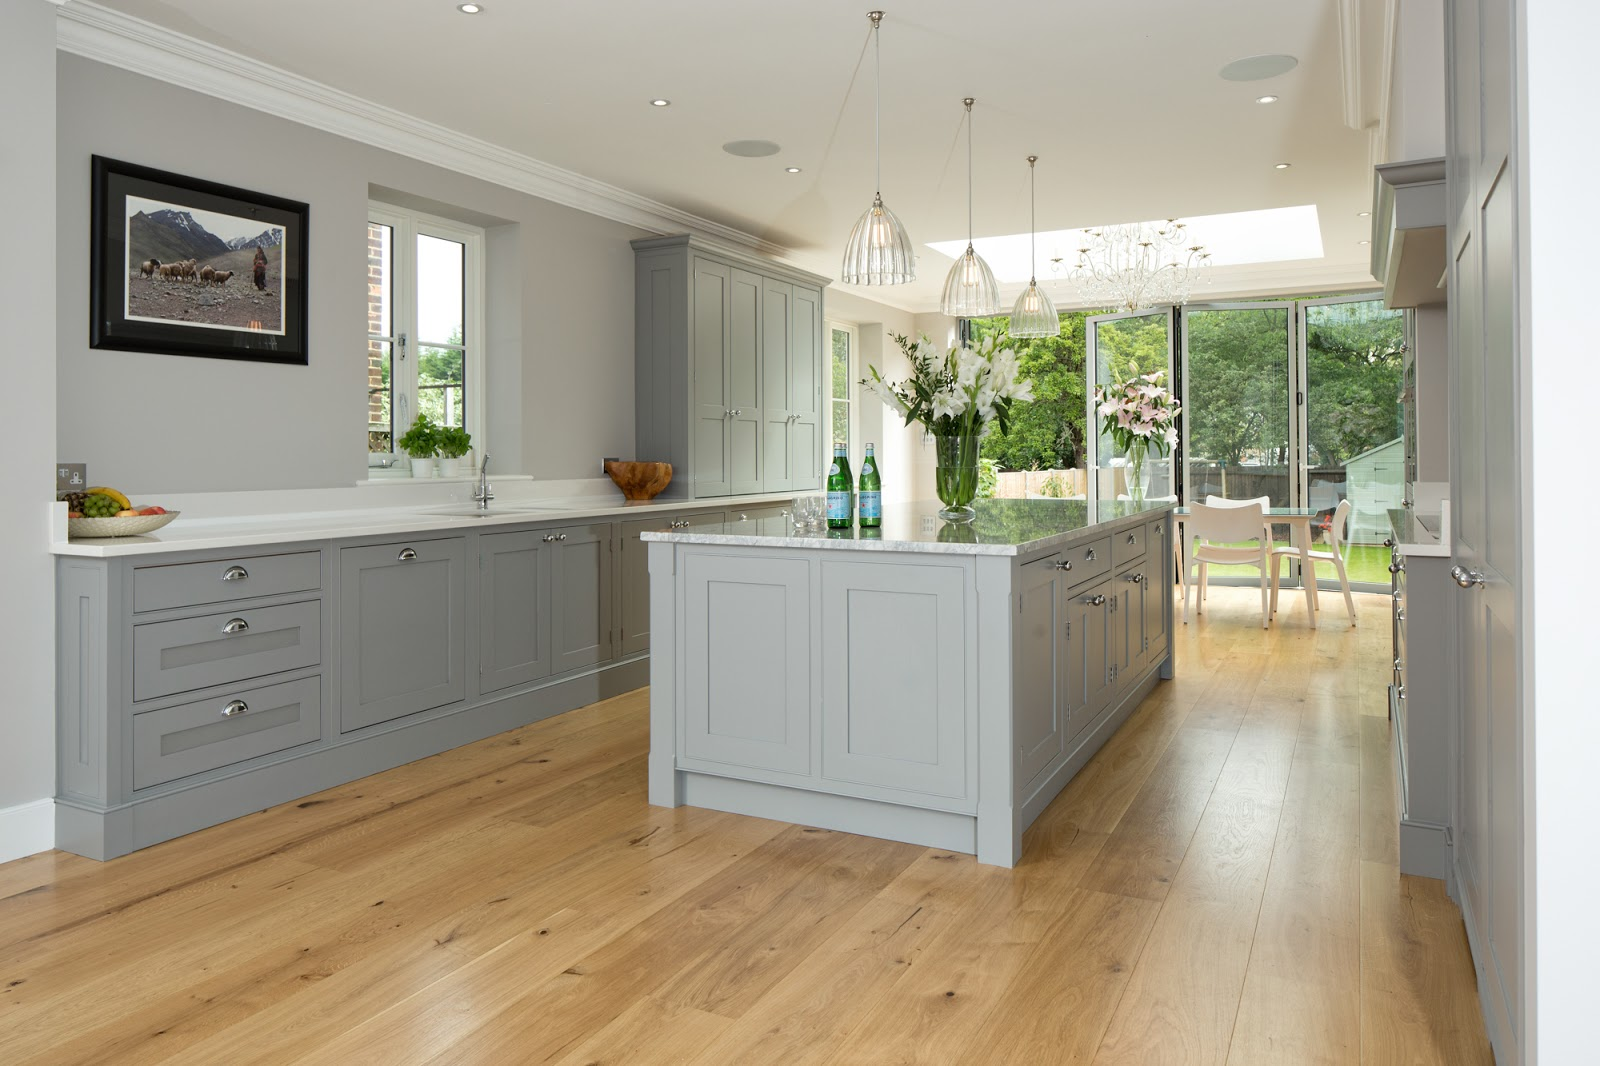 Kitchens In White And Grey